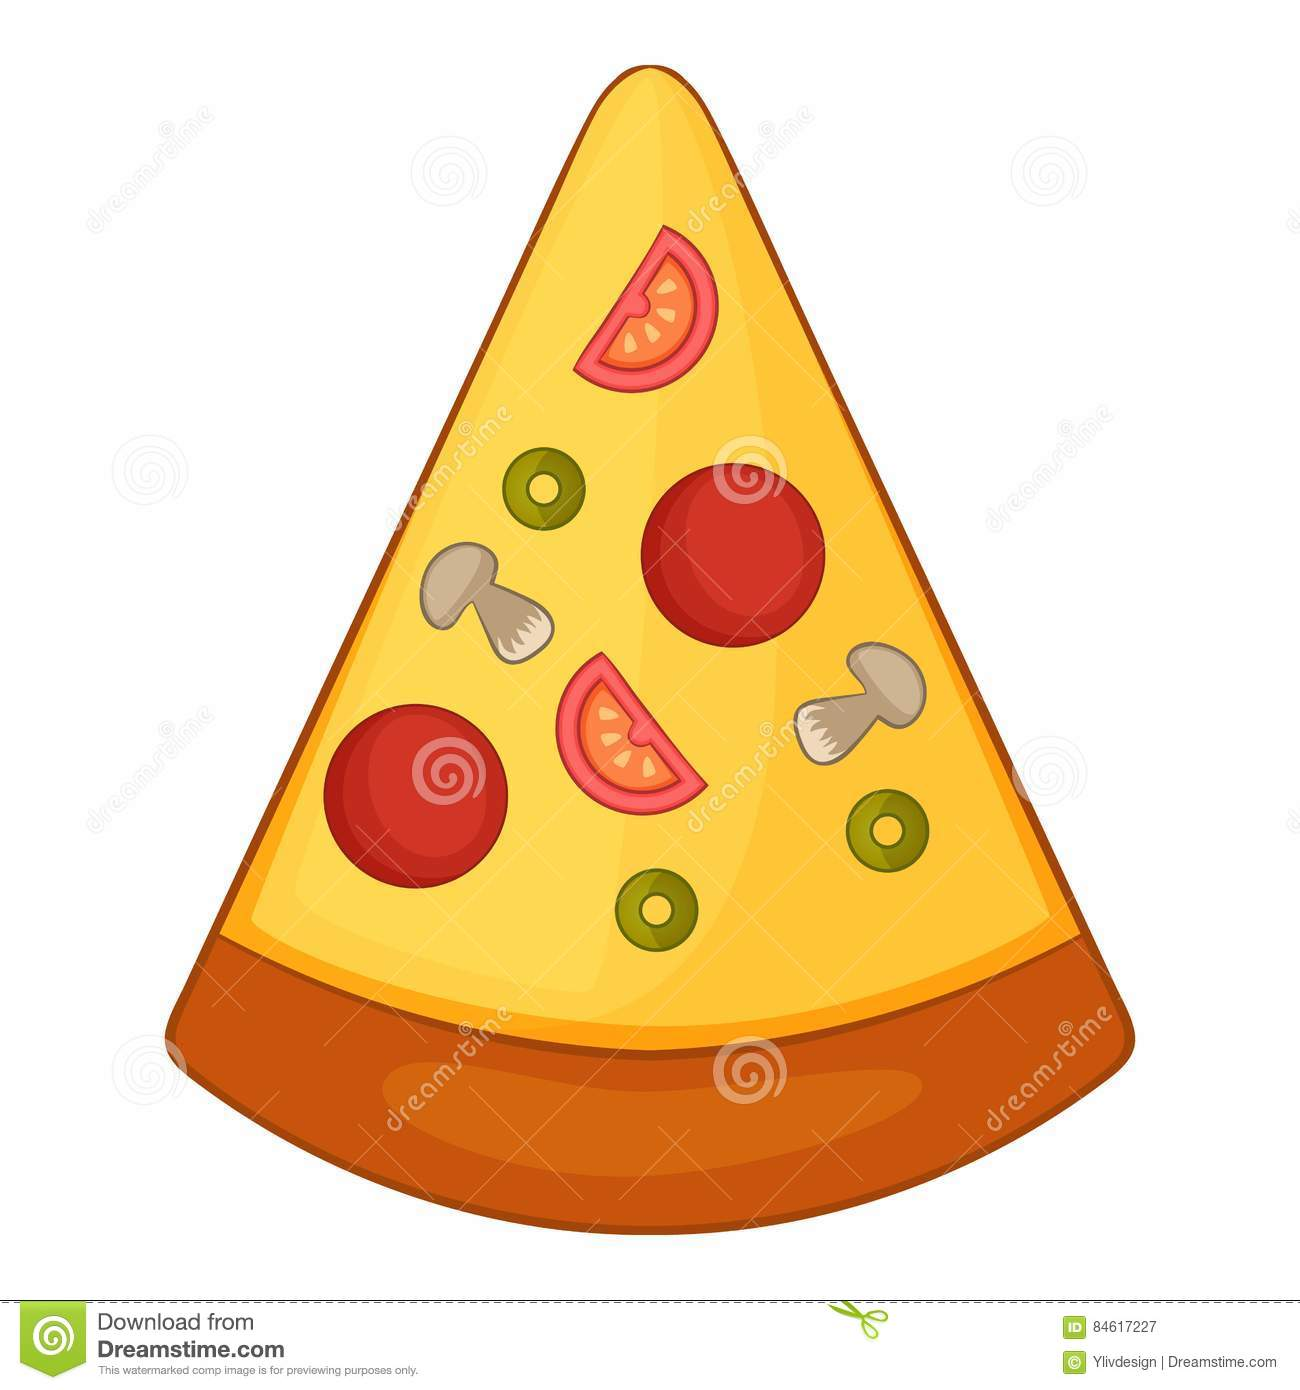 Cartoon Pizza Chef Giving Delicious Hand Sign Vector Illustration